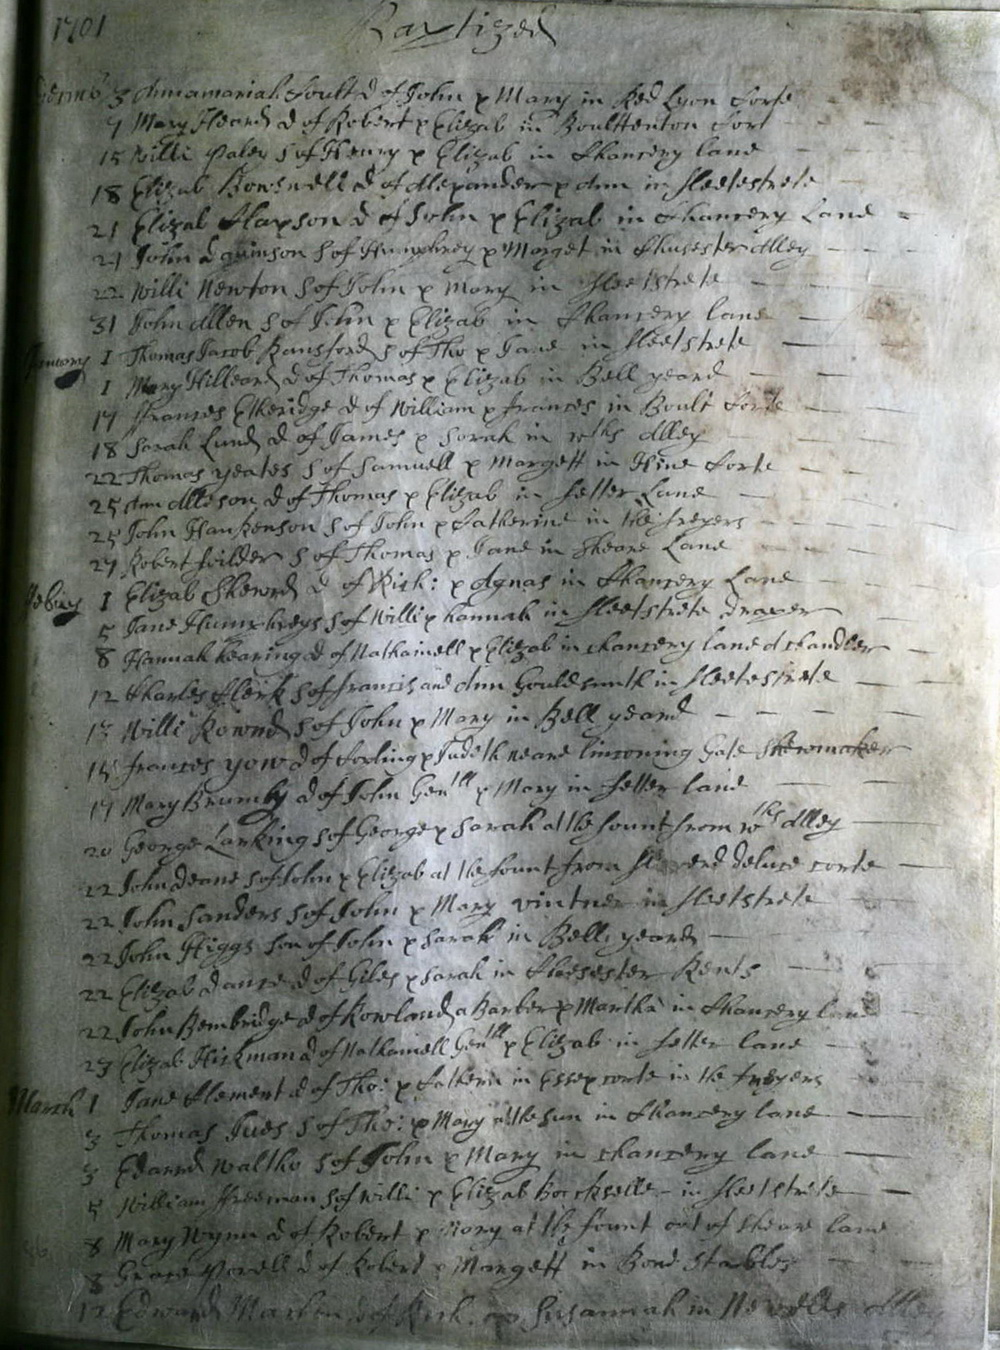 Parish register St Dunstan in the West: Christening of Elizabeth Dance 22 February 1701